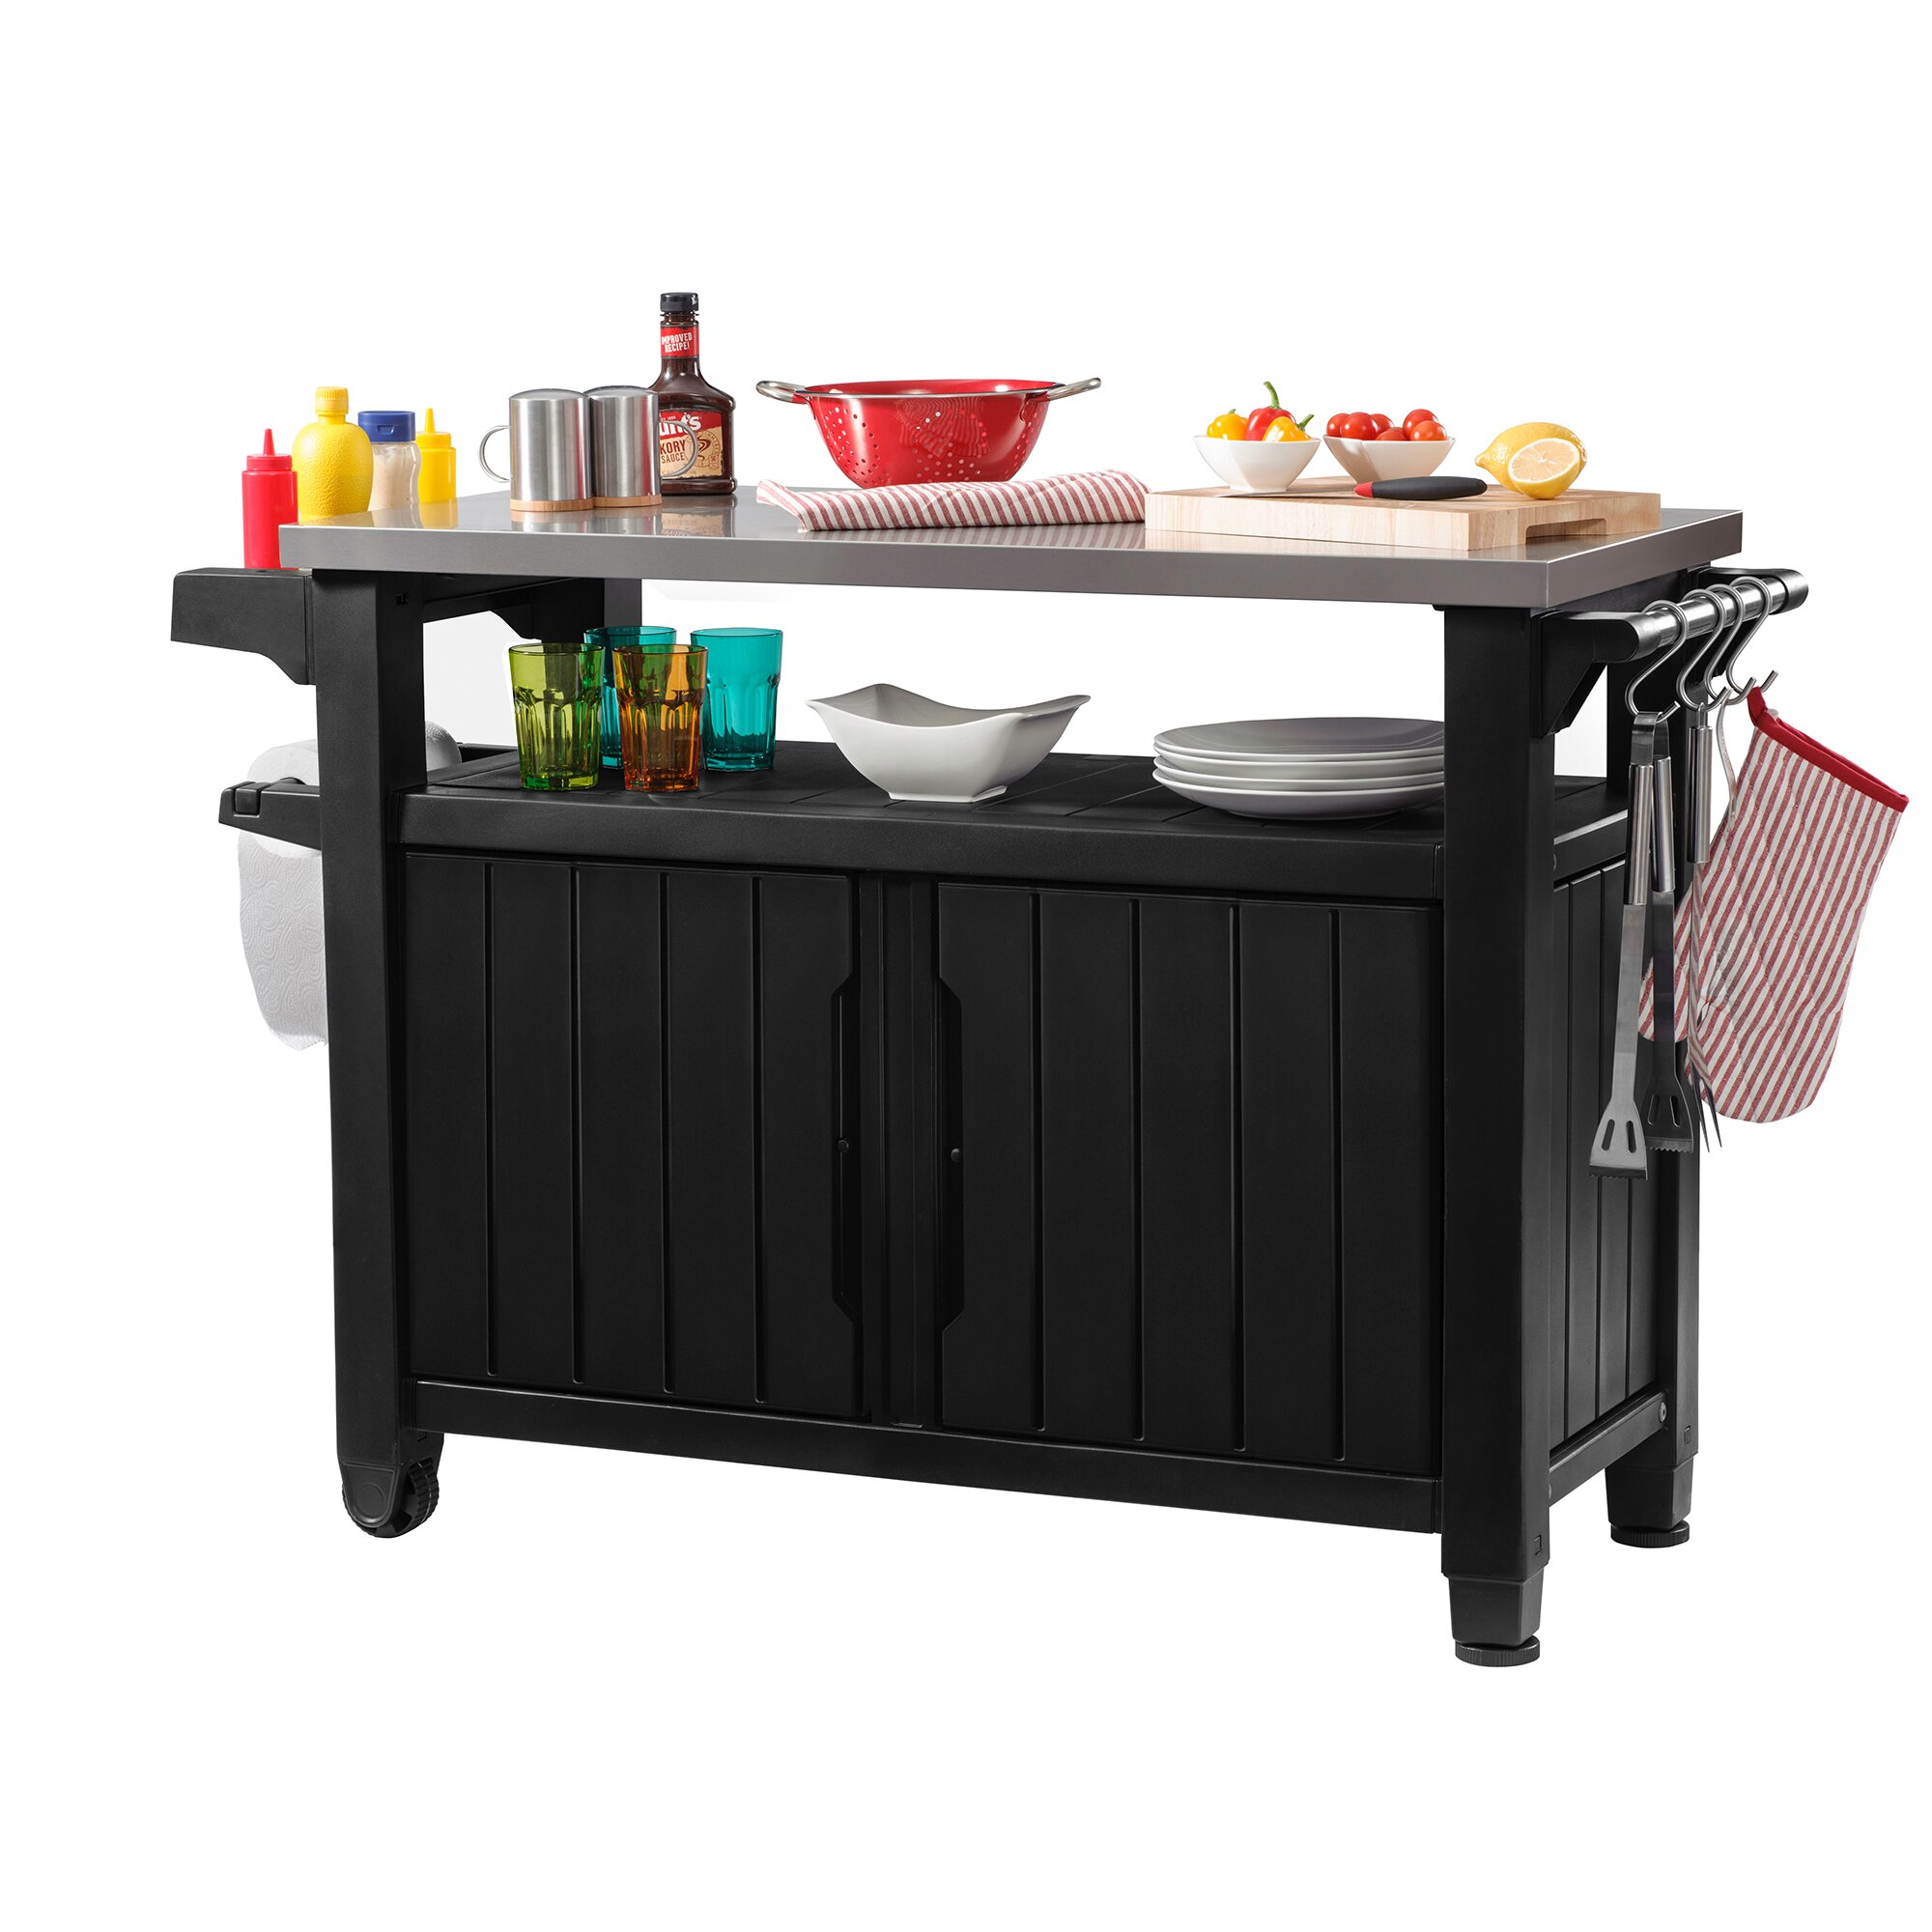 keter unity bar serving cart reviews wayfair. Black Bedroom Furniture Sets. Home Design Ideas